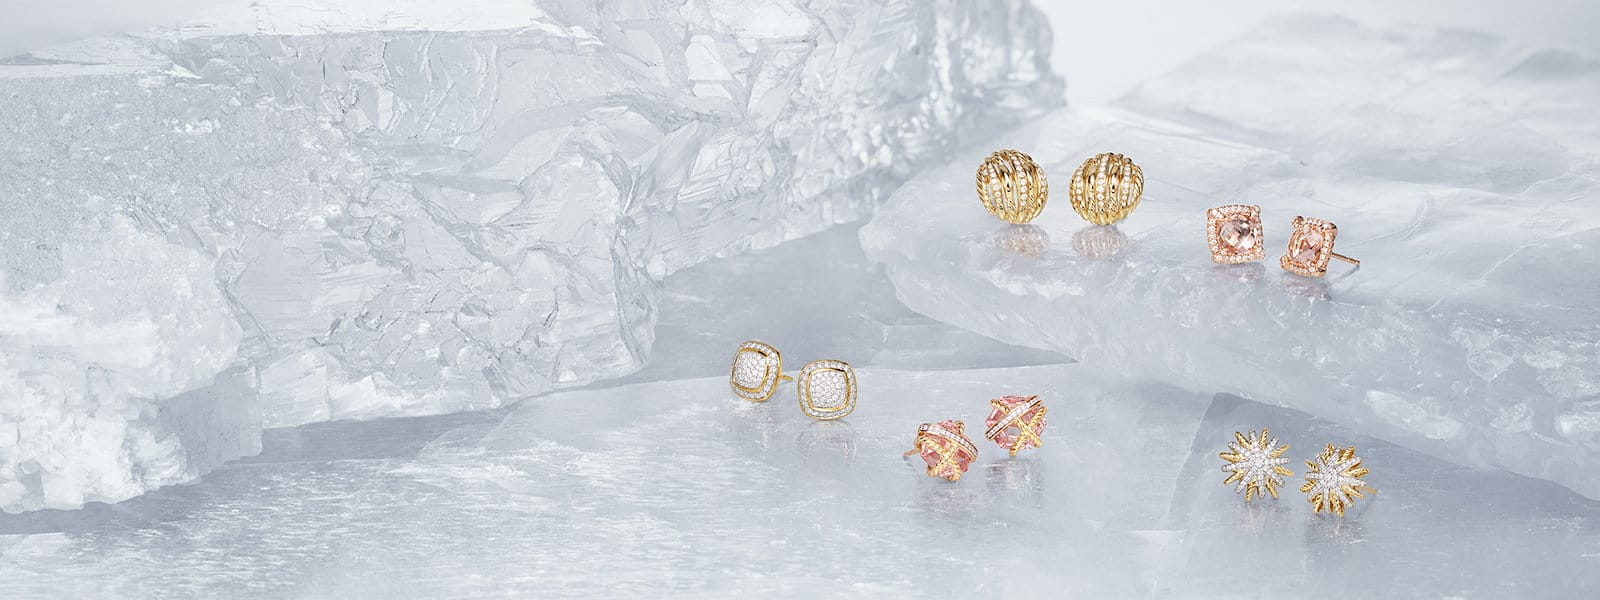 Tides, Châtelaine, Starburst, Cable Wrap and Albion stud earrings, in 18K yellow gold with pavé white diamonds and with or without morganite, on layers of ice.